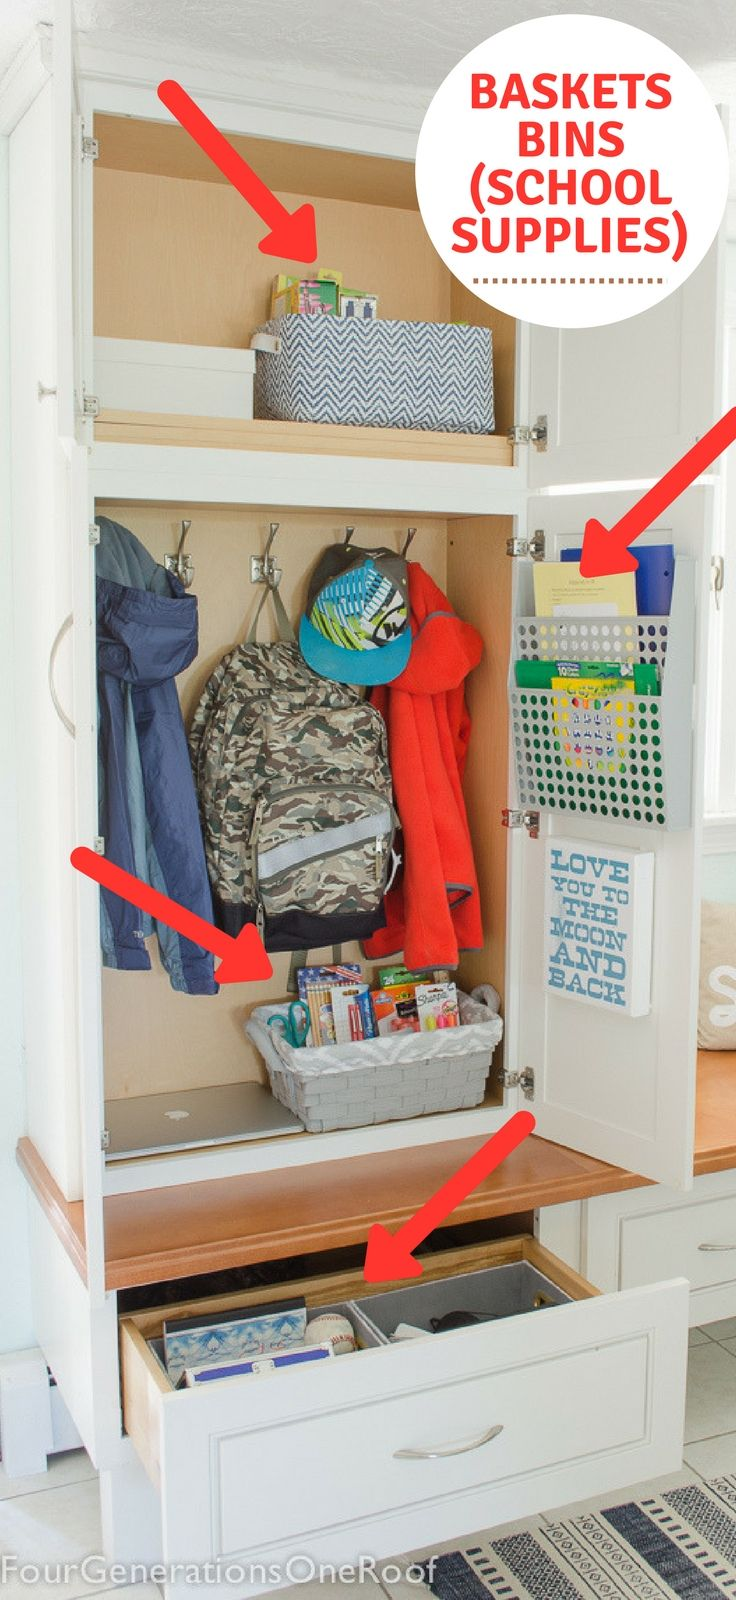 How to make a school locker at